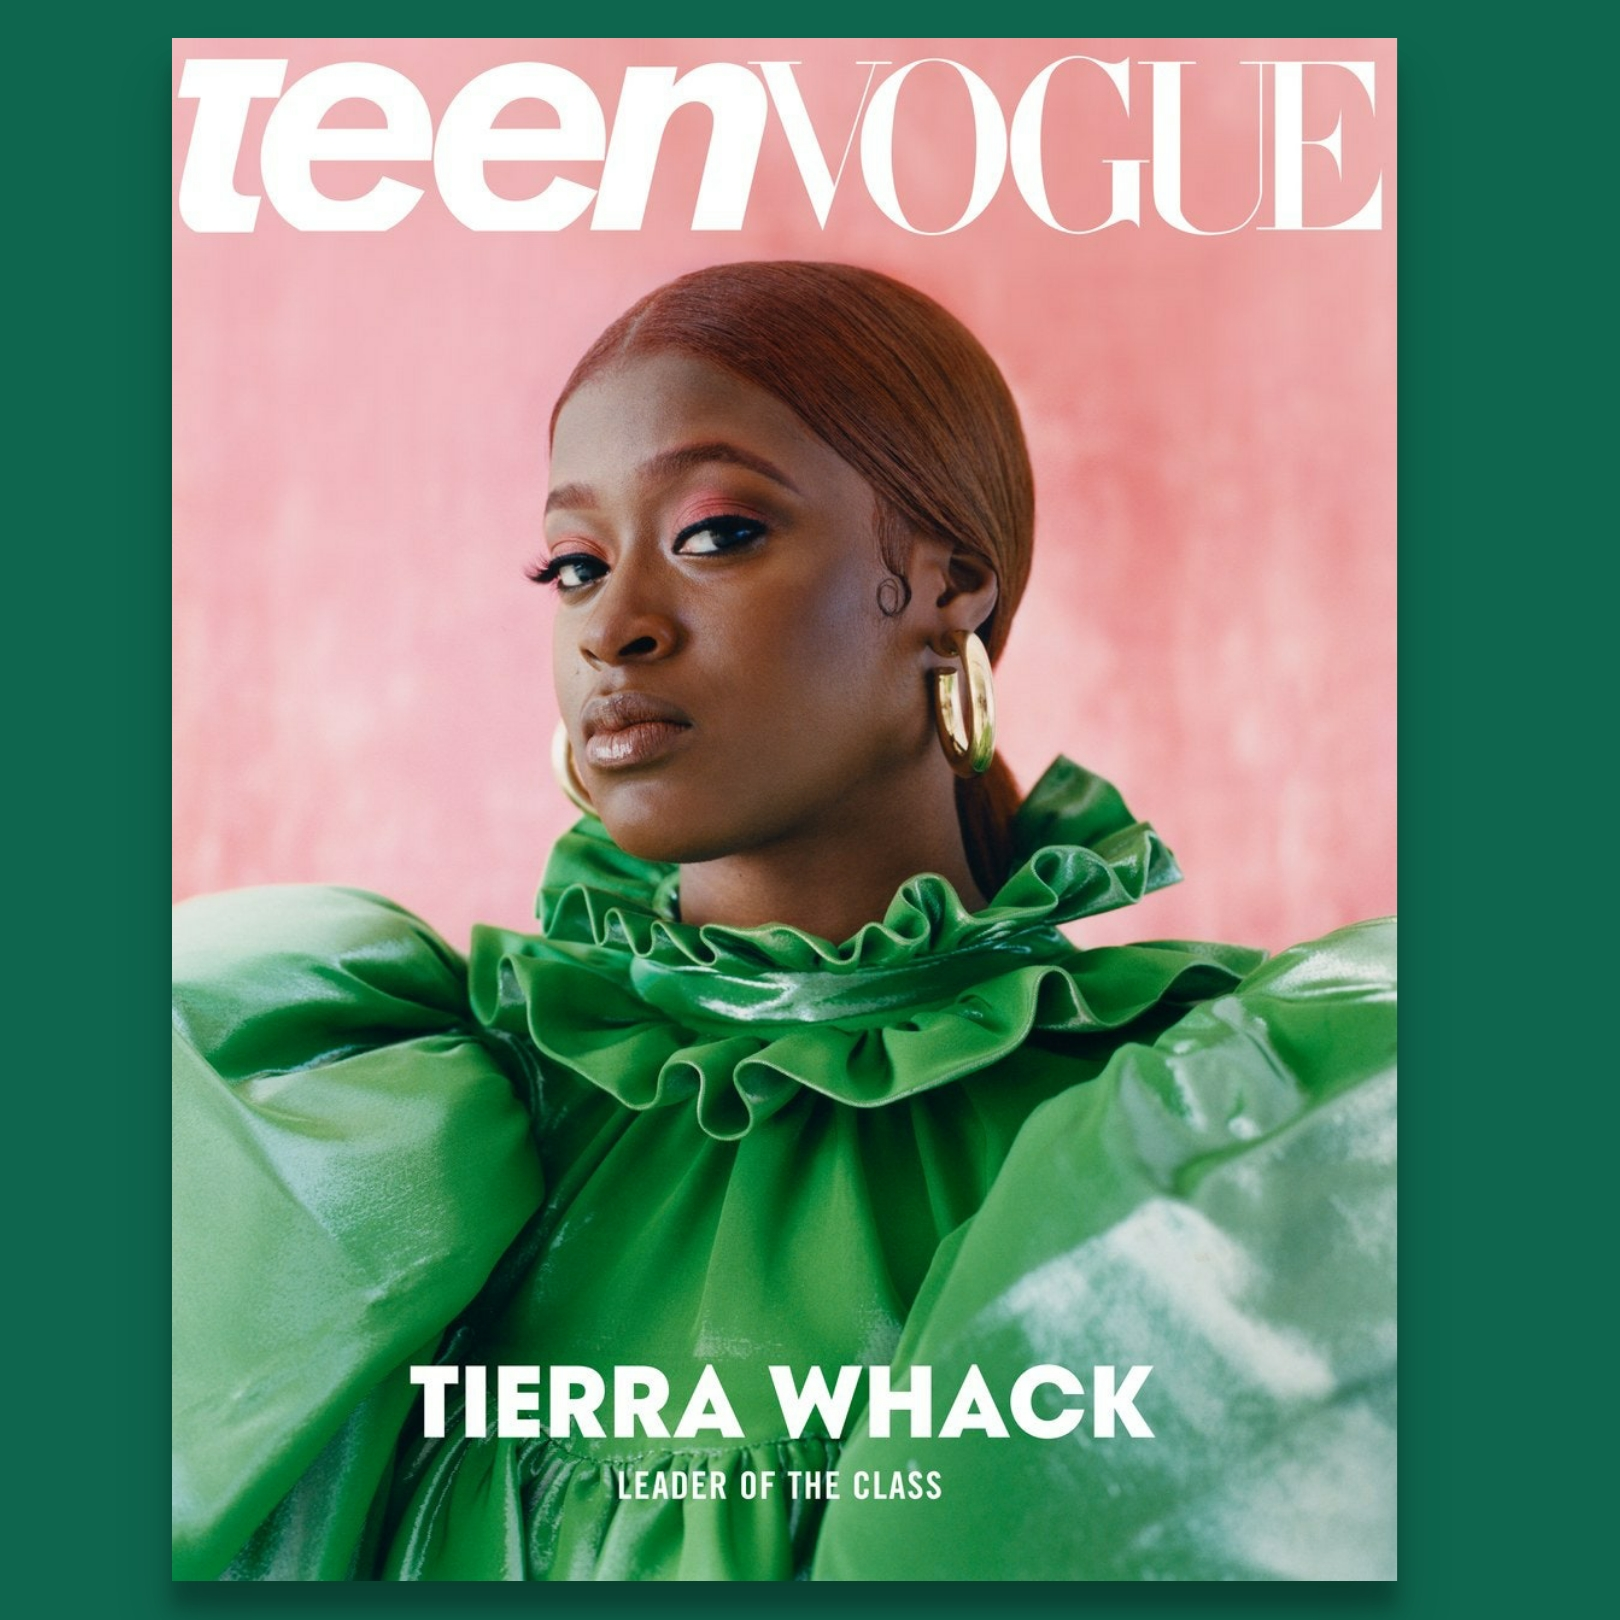 Teen Vogue, Tierra Whack, 360 MAGAZINE, Interscope Records